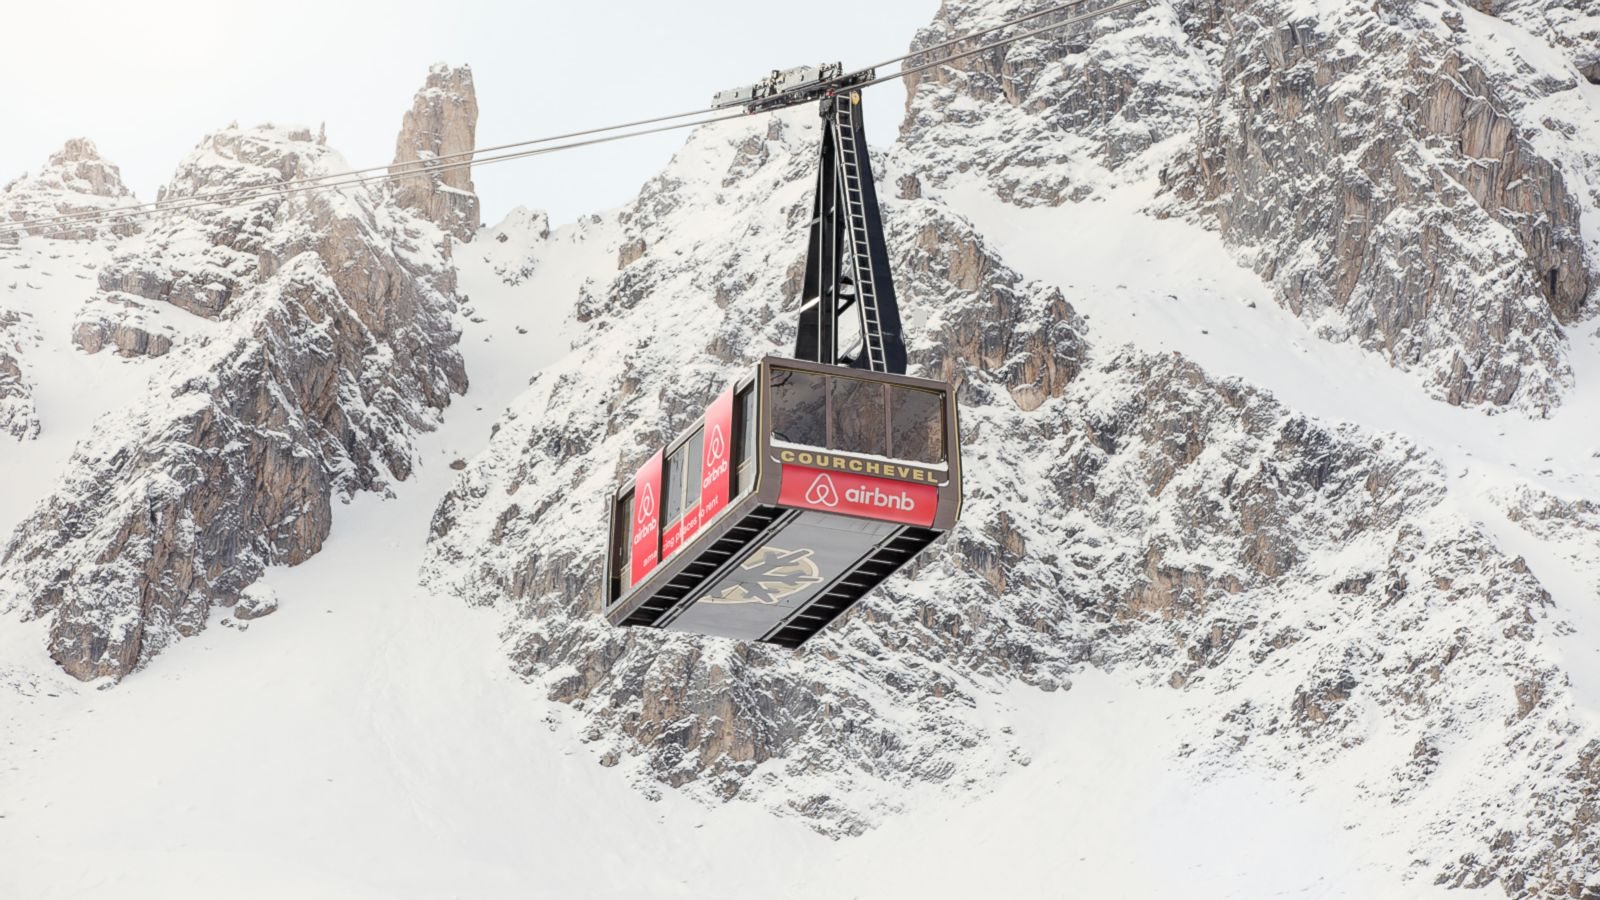 French Alps to House Cable Car-Turned-Hotel - ABC News